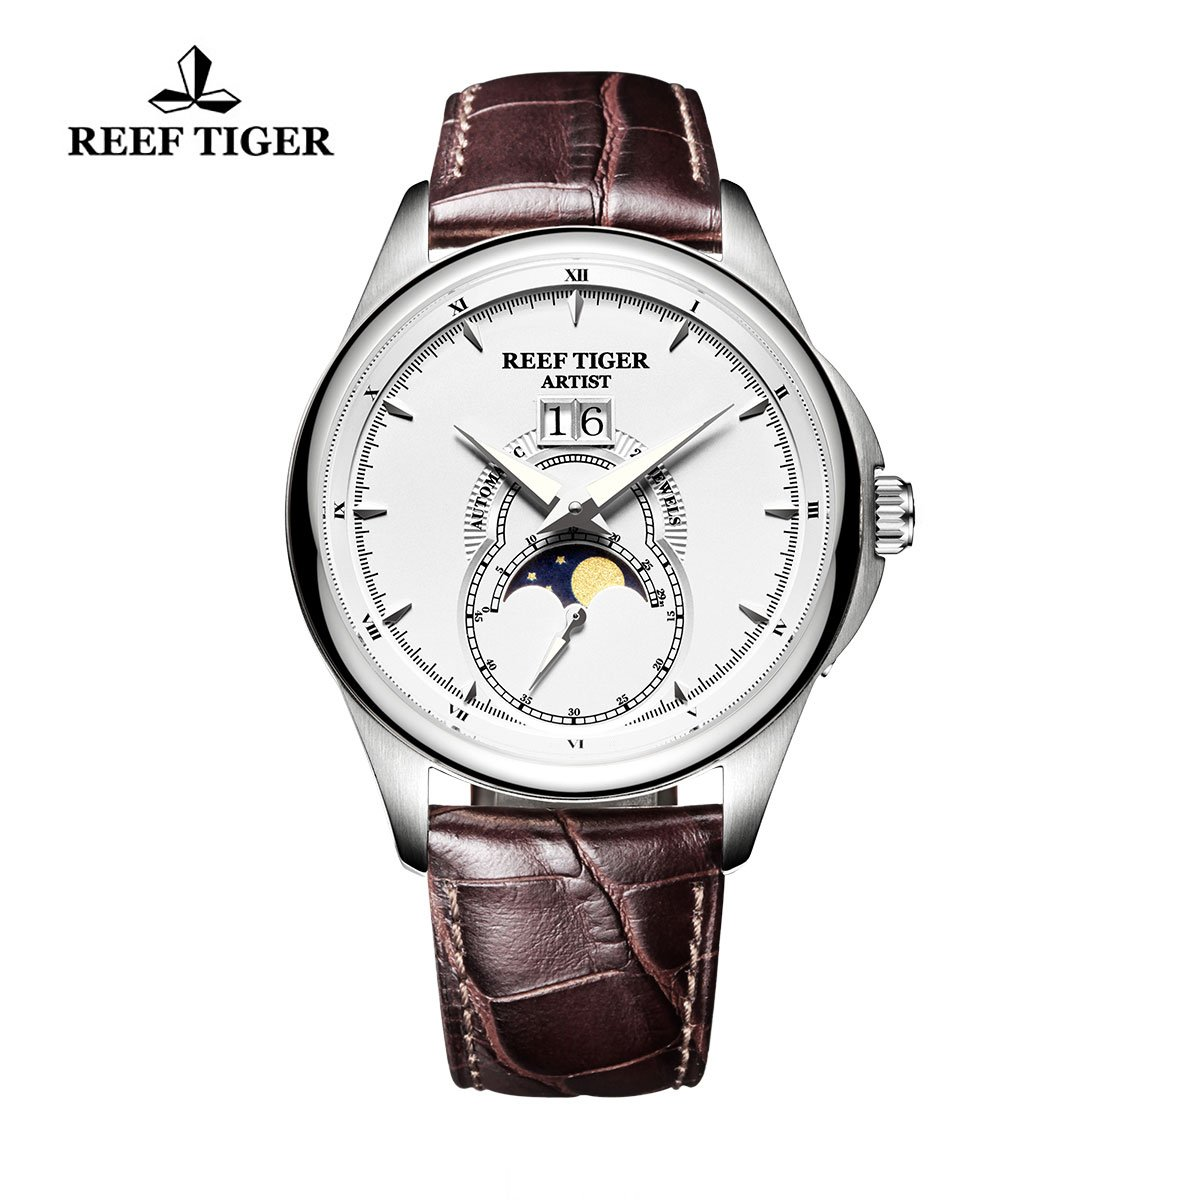 Reef Tiger Fashion Watches for Men Moon Phase Big Date Rose Gold White Dial Leather Strap Watch RGA1928